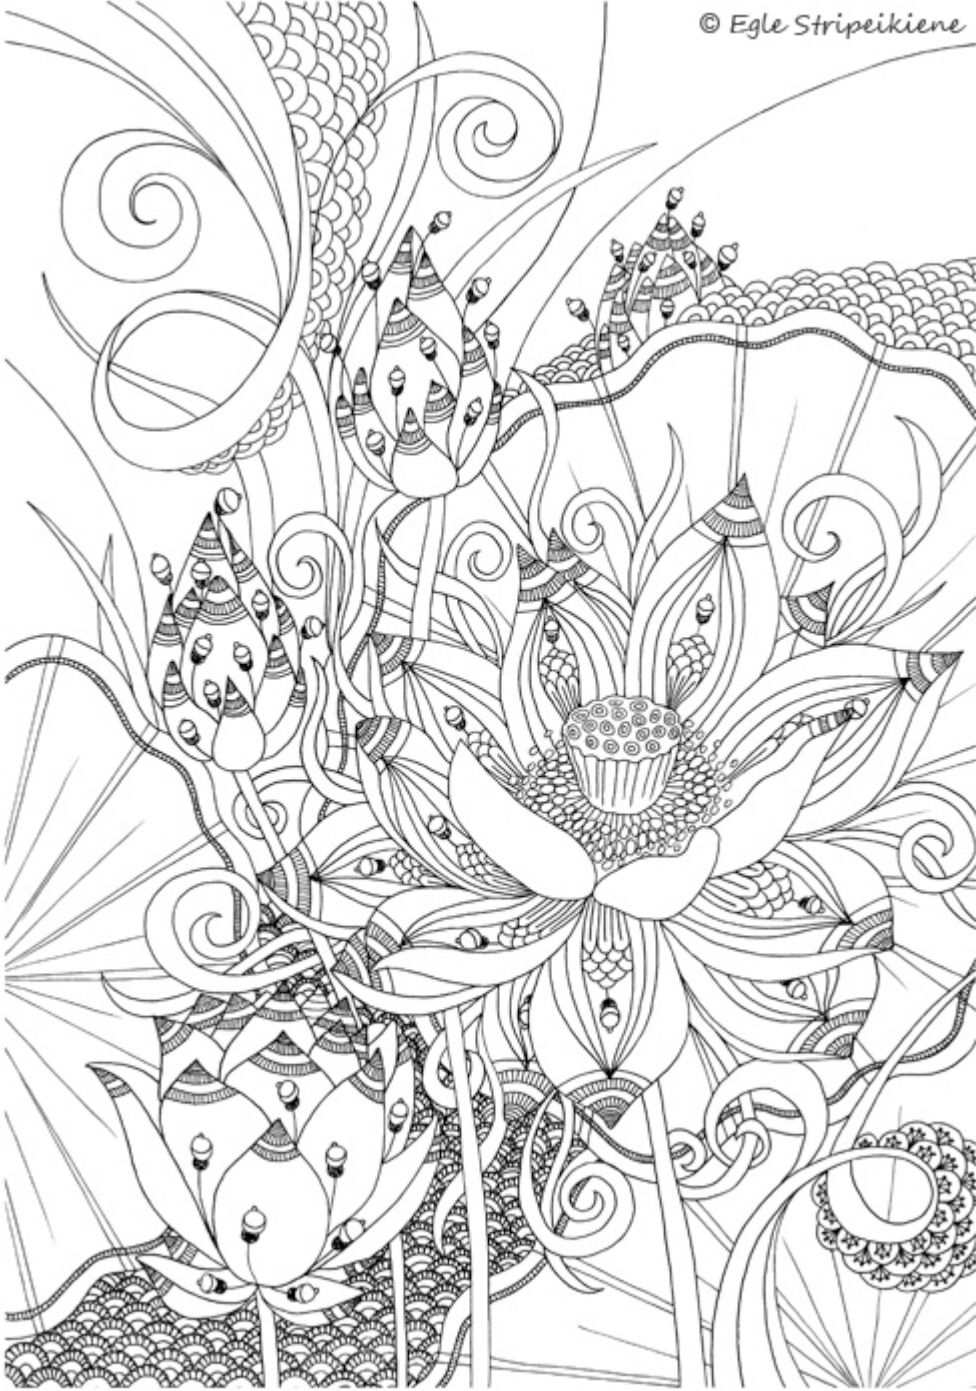 Pin By Cami On Coloring Pages Coloring Pages Coloring Books Colorful Drawings